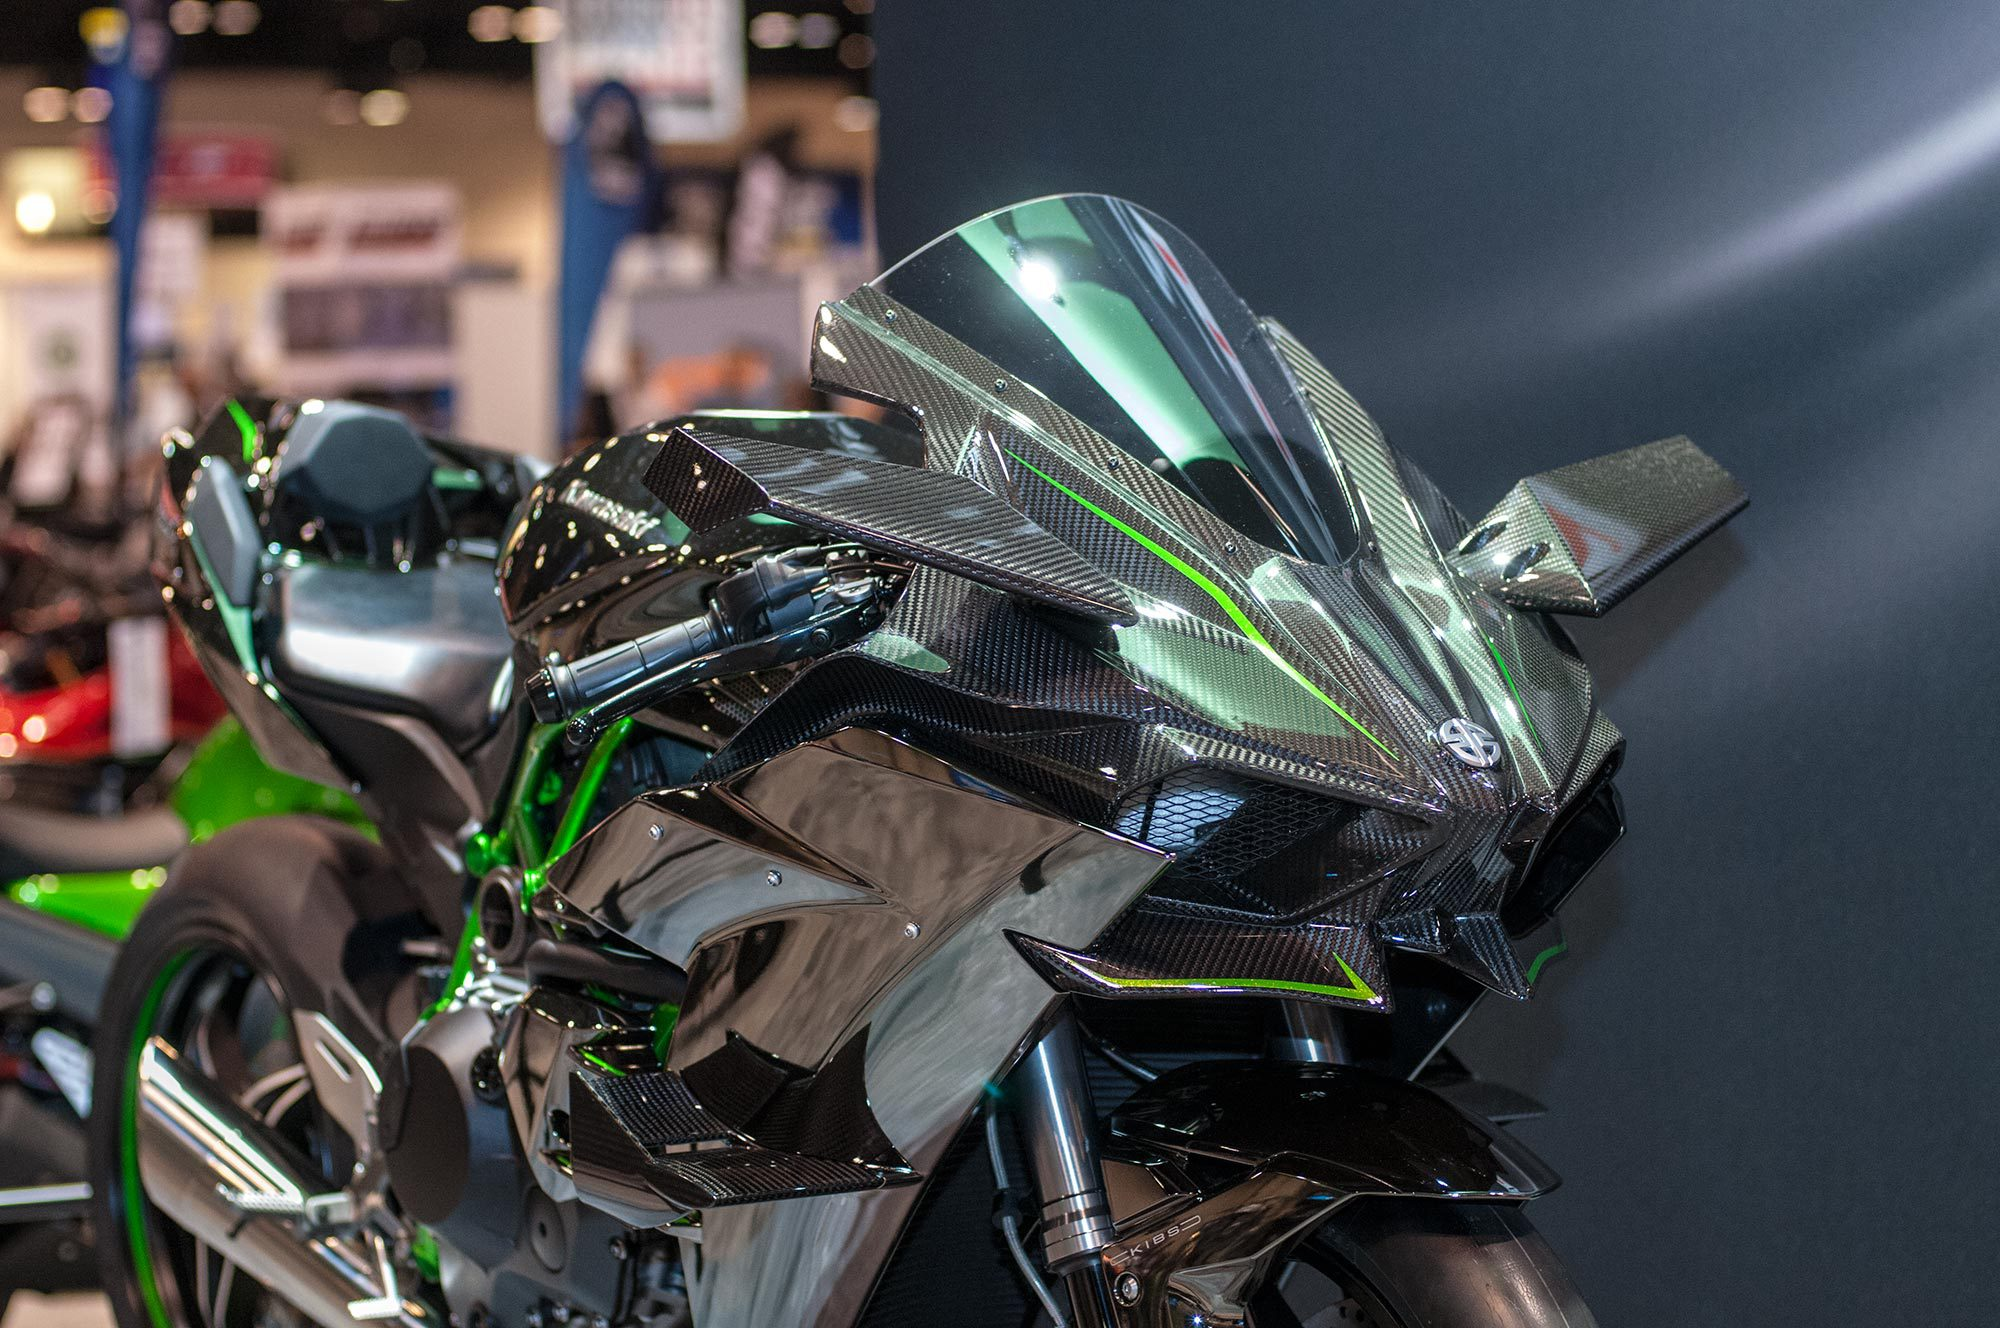 2015 Kawasaki Ninja H2r Front View 3 Photos